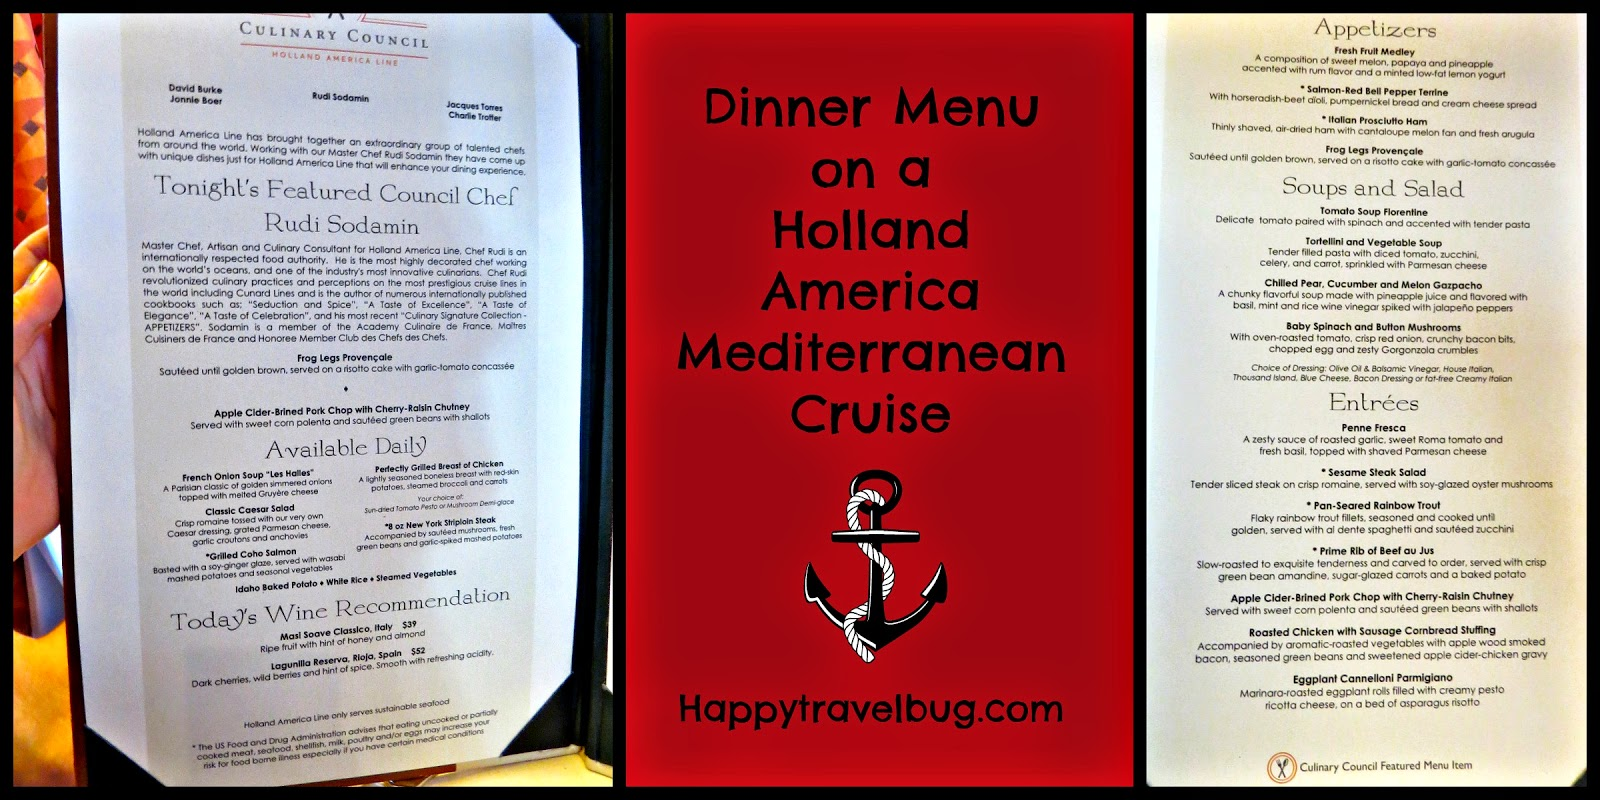 Dinner menu on our Holland America Mediterranean Cruise